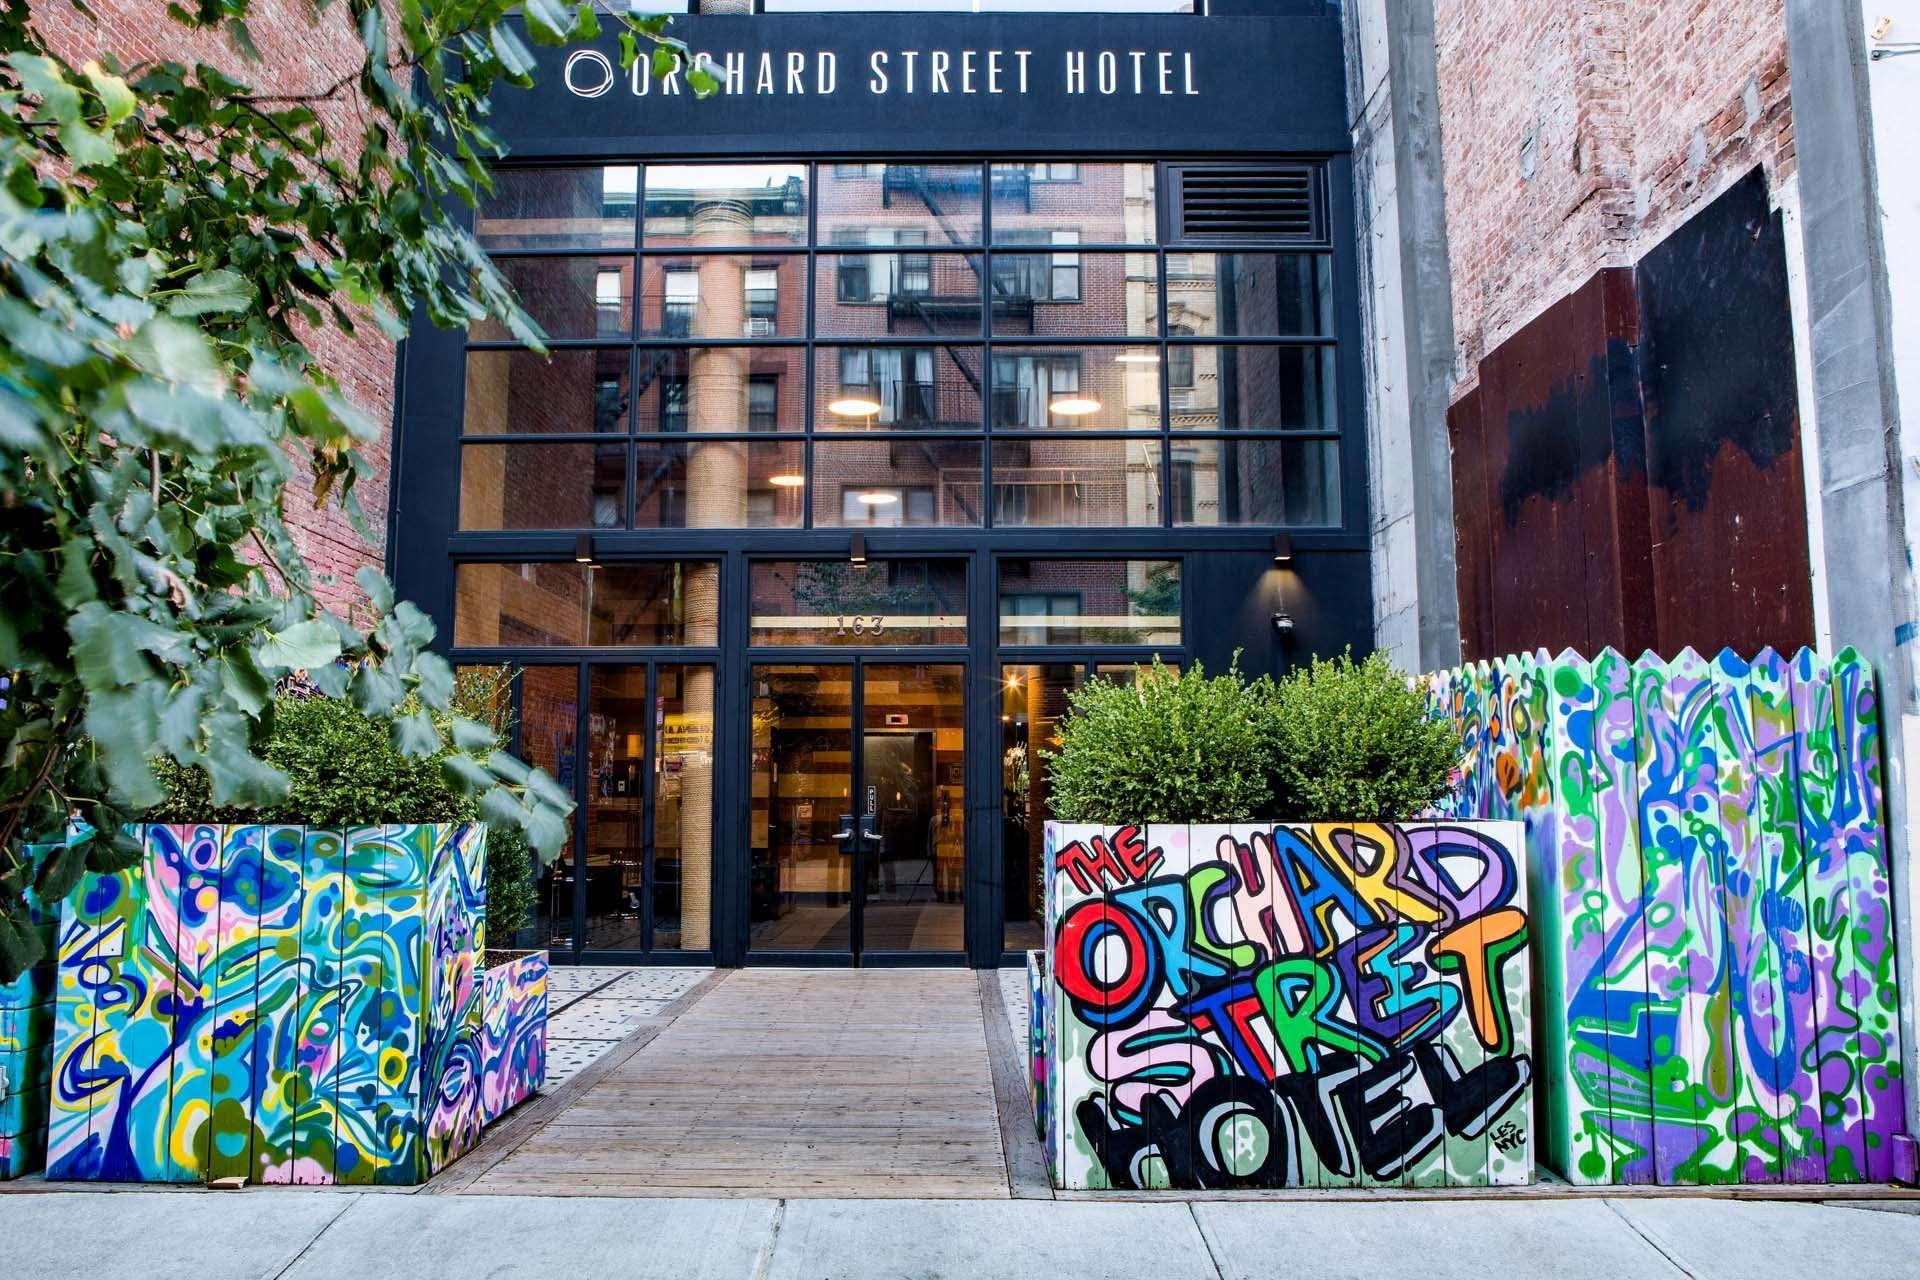 Orchard Street Hotel New York (NY) United States